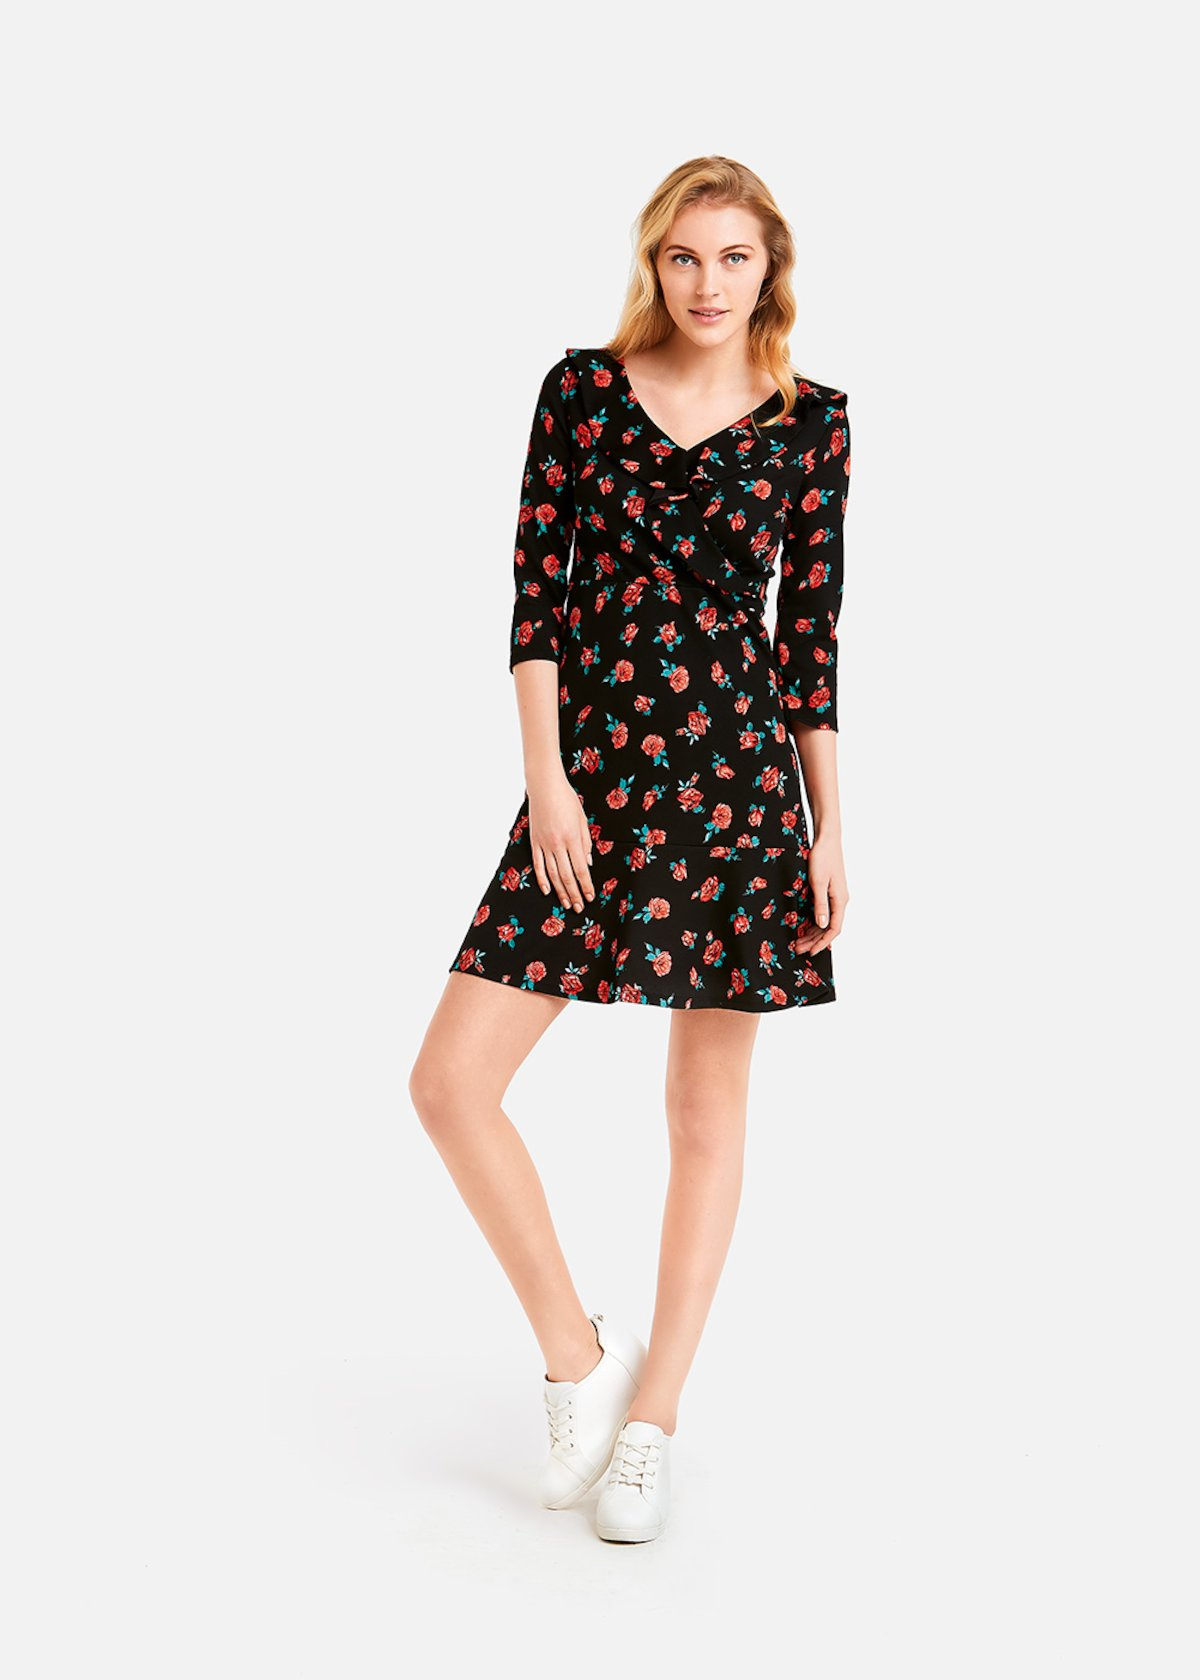 Alyson dress 101 roses pattern - Black Fantasia